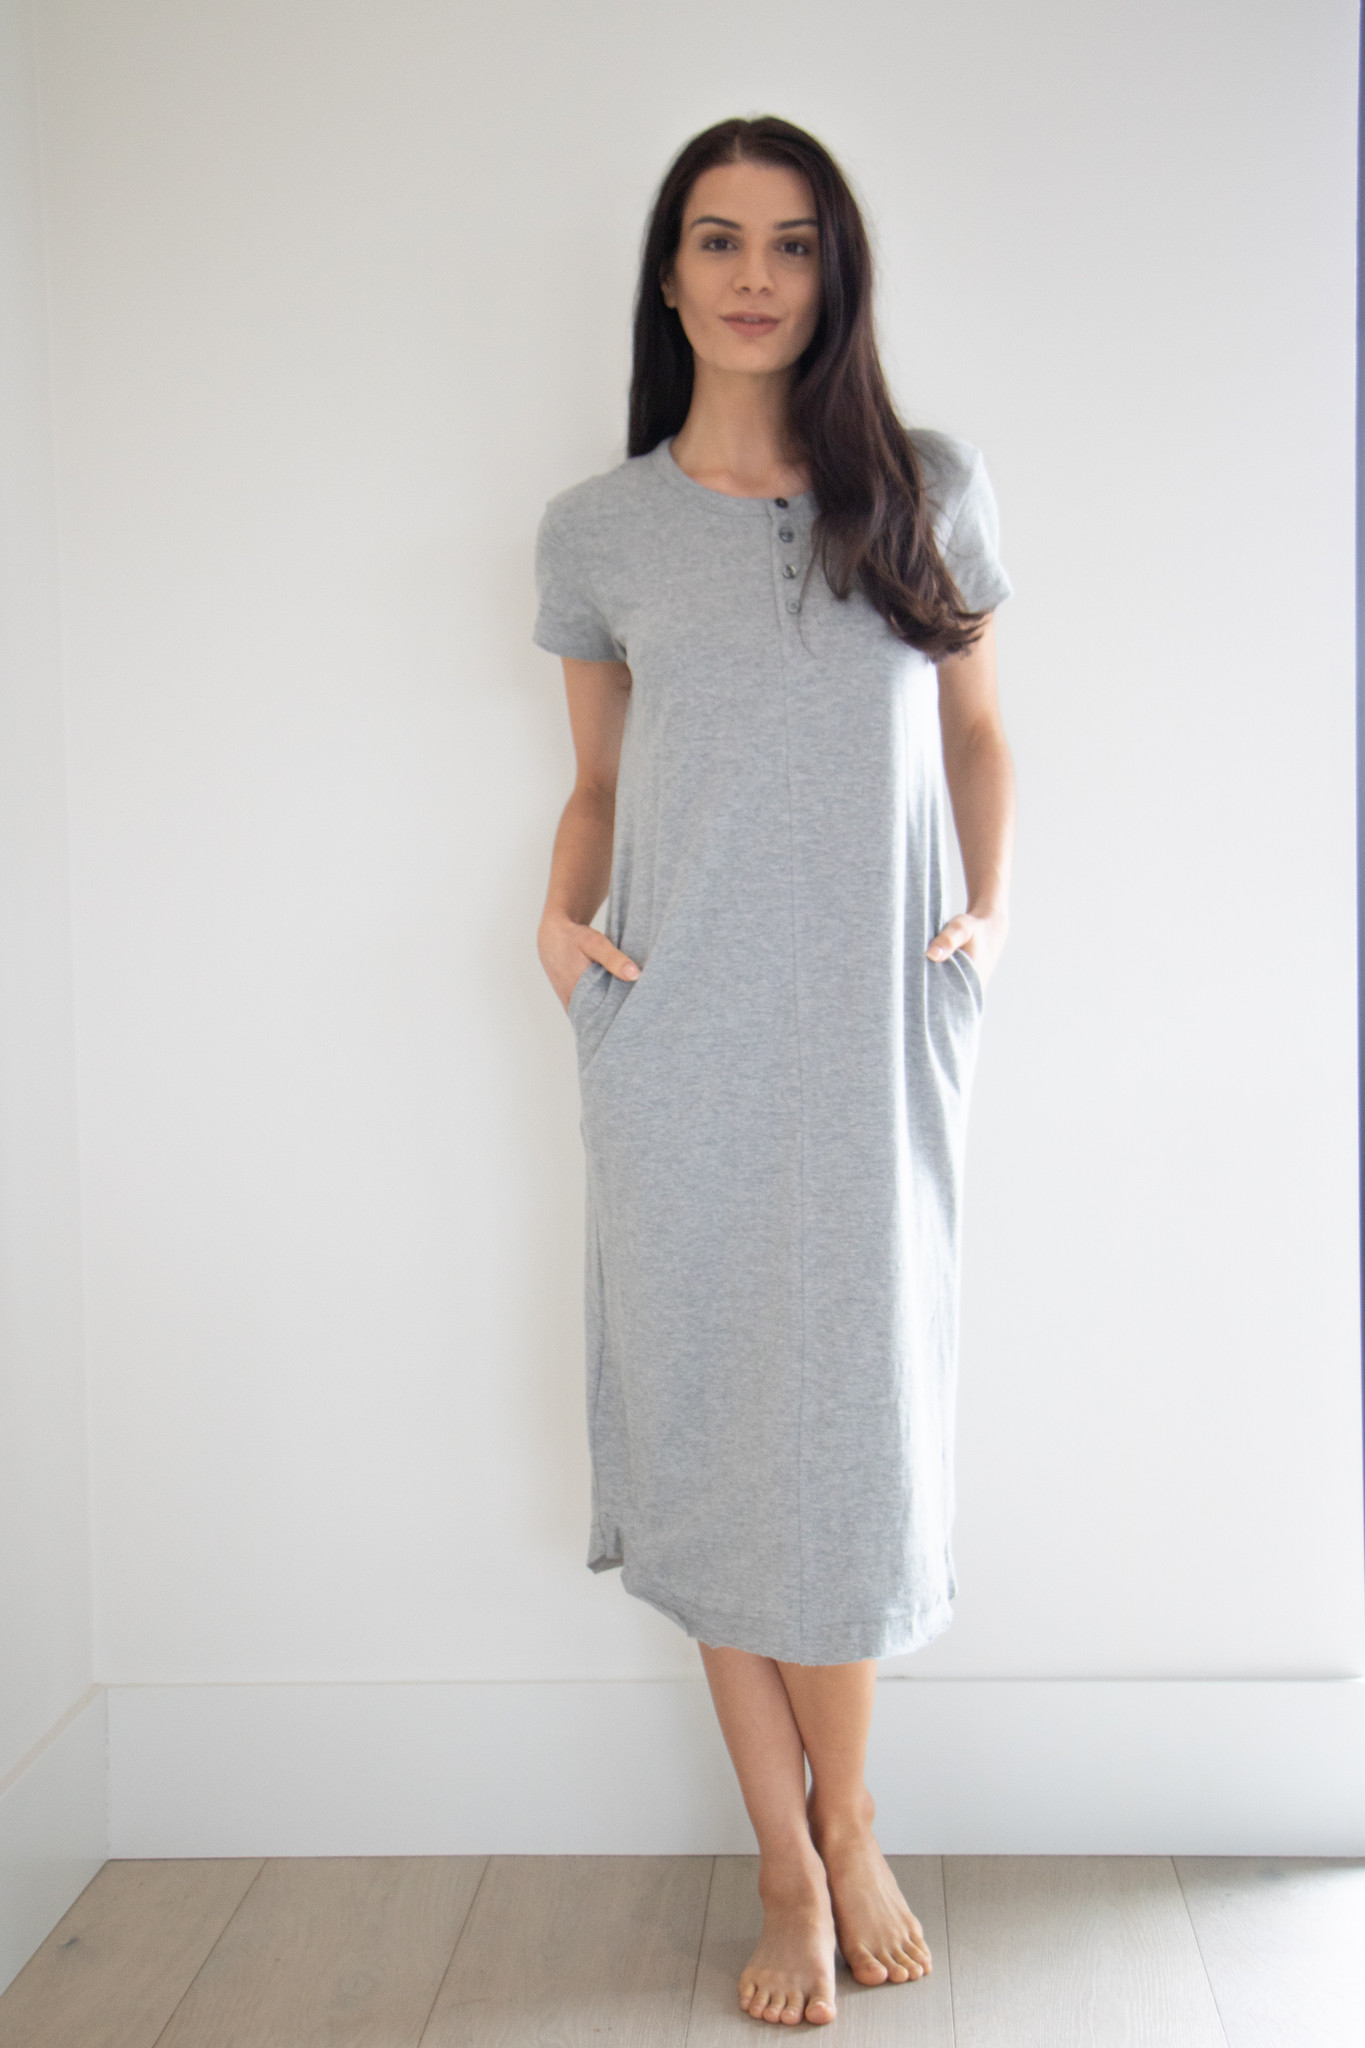 A casual basic; this henley midi dress is made from a lightweight cotton material. Perfect for a dressed down occasion, wearing for errands and lounging.